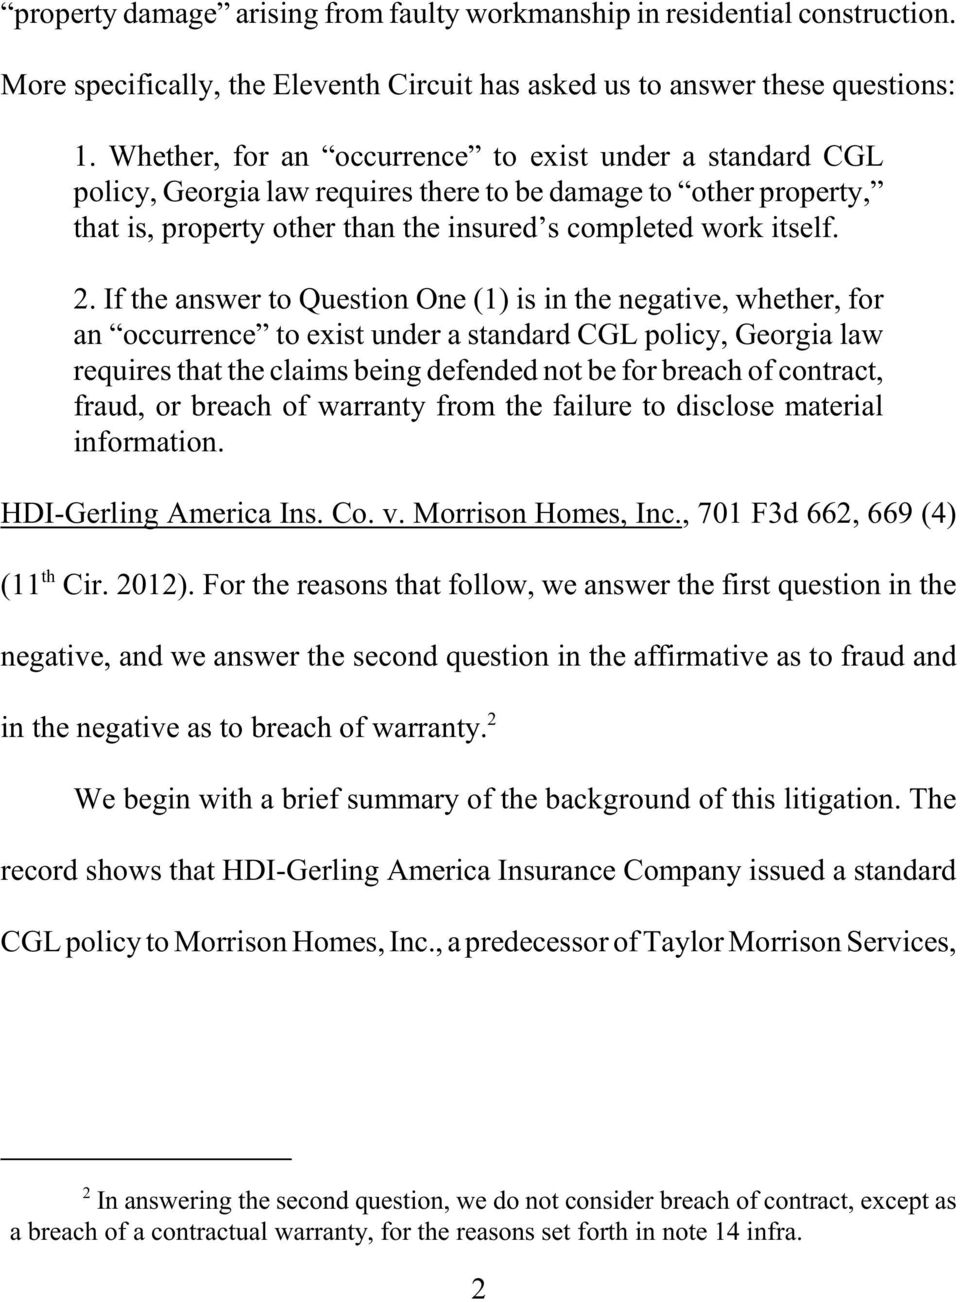 If the answer to Question One (1) is in the negative, whether, for an occurrence to exist under a standard CGL policy, Georgia law requires that the claims being defended not be for breach of